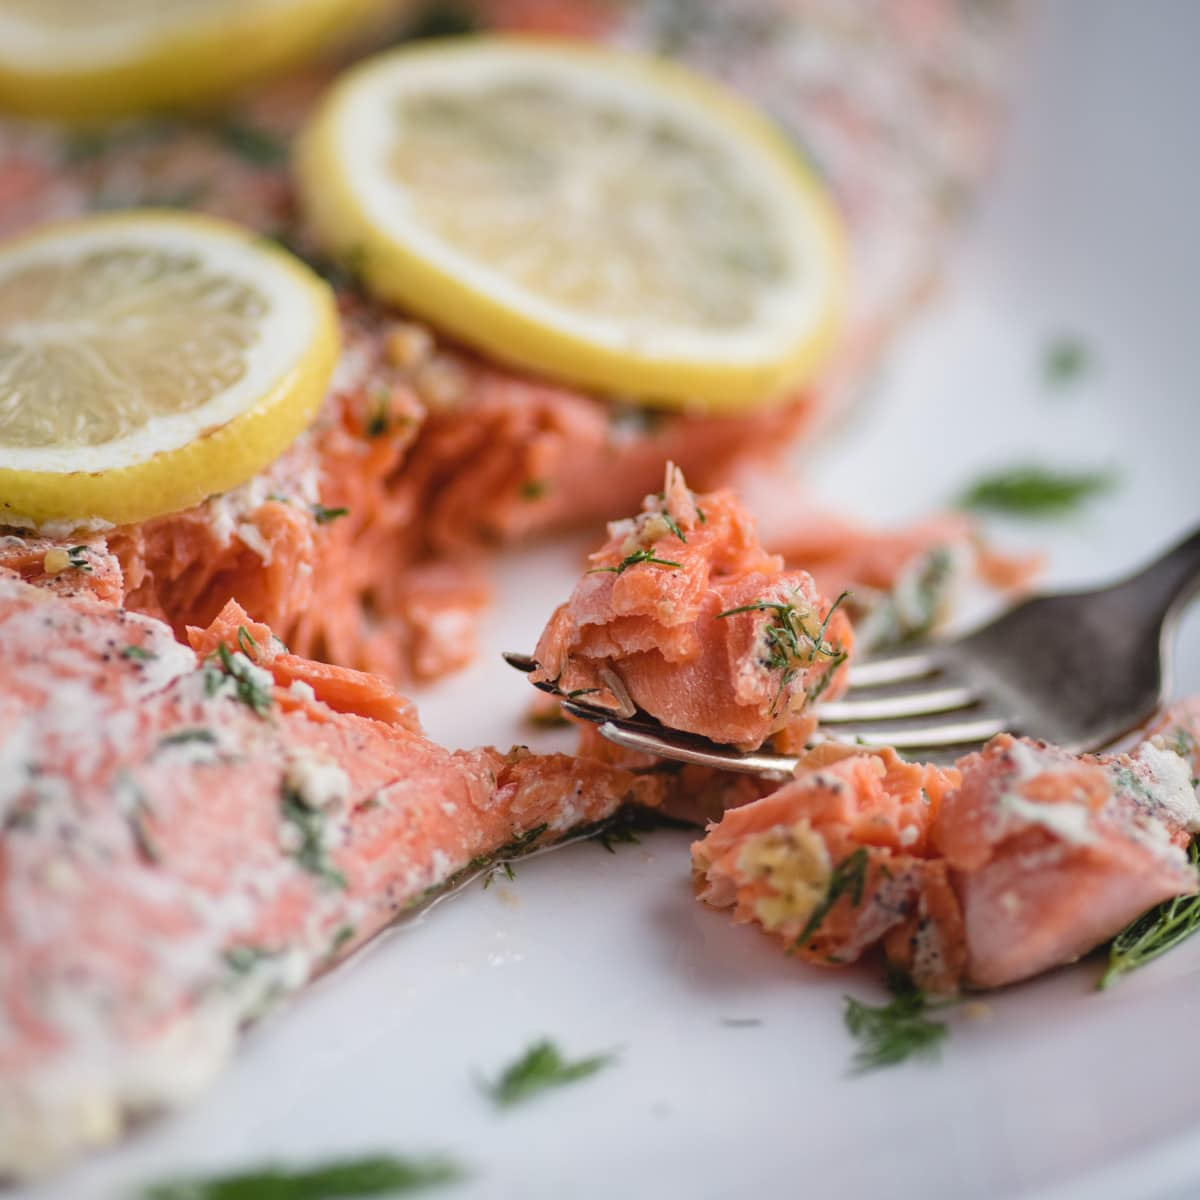 Lemon dill salmon close up picture of bite on fork by an oven baked filet